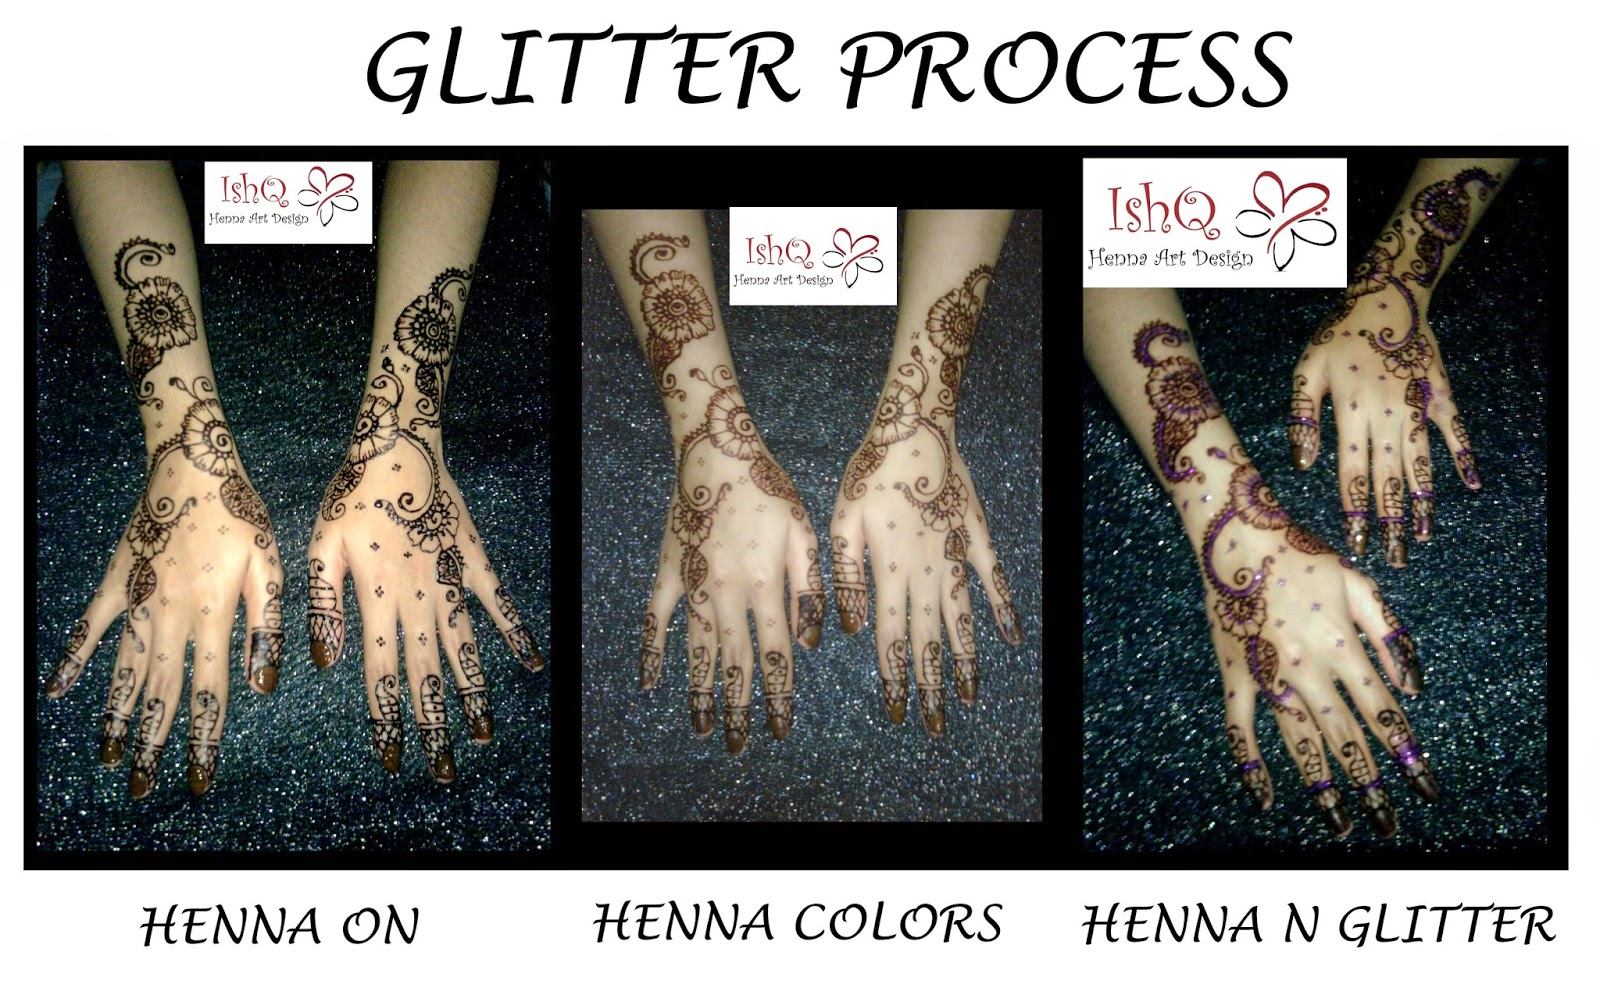 ISHQ HENNA ART DESIGN WARNA HENNA